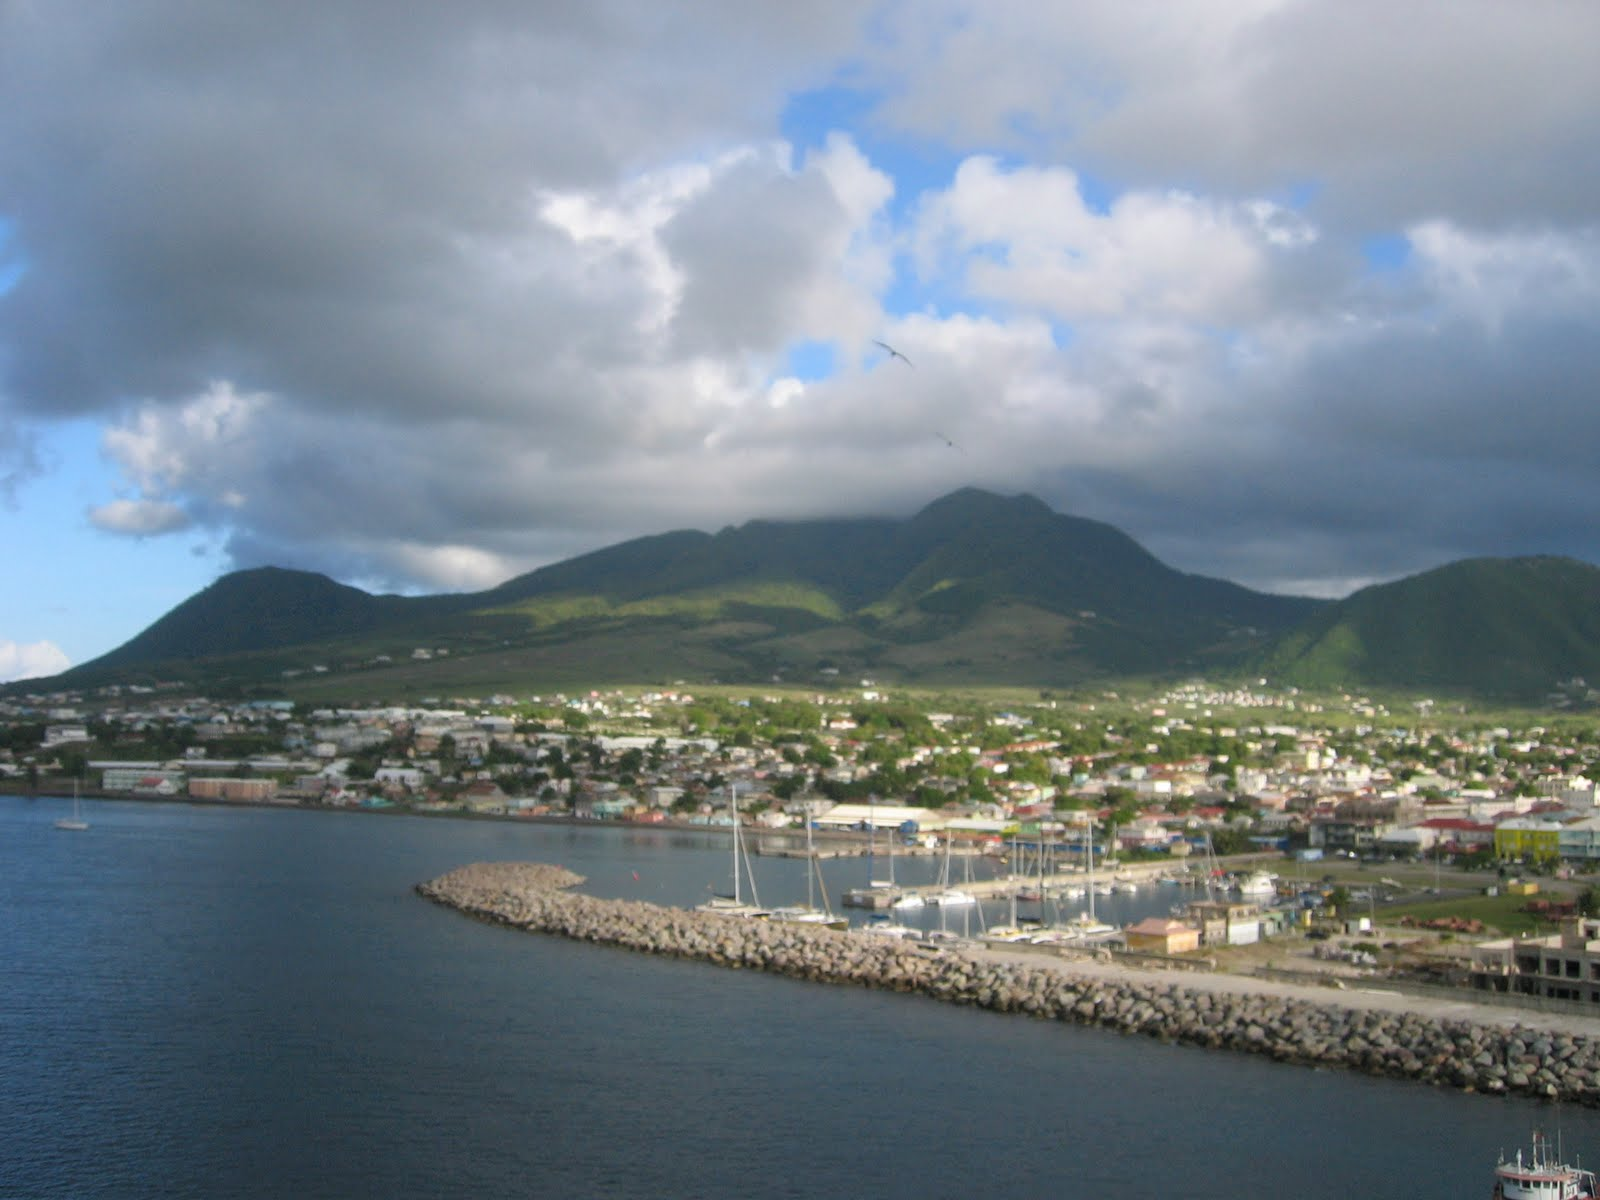 ships dock in the capital of st kitts basseterre sugar cane used to be the main industry on st kitts but most of the plantations have shut down and they